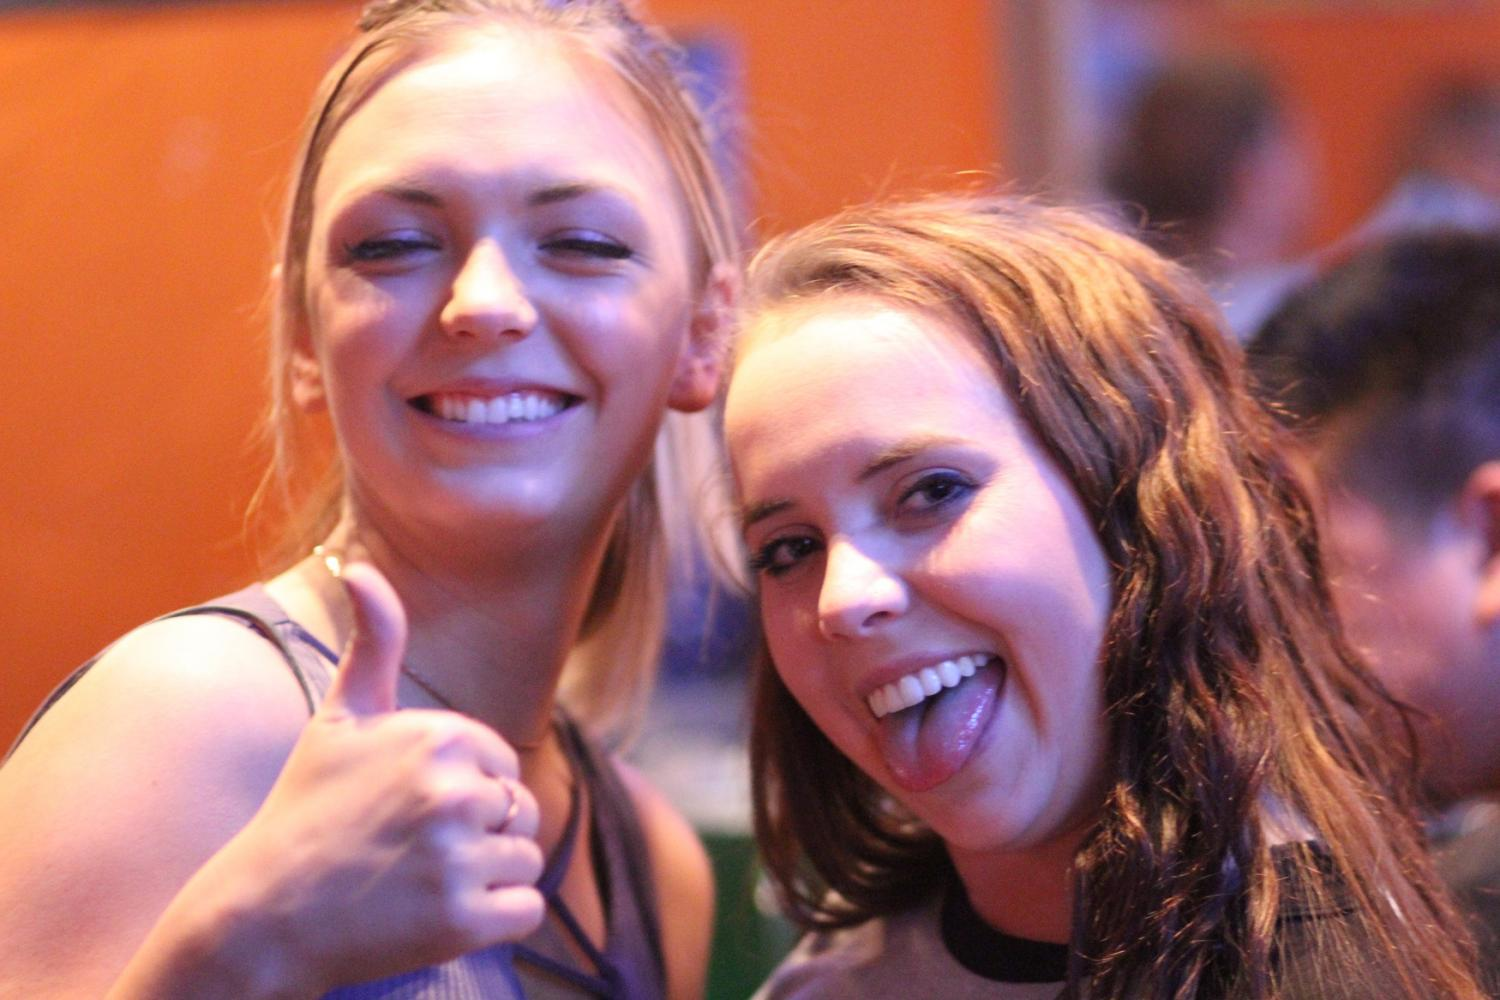 Kylie Stark (left) and Kayla Willms smiling at Monterey's Pub & Grub